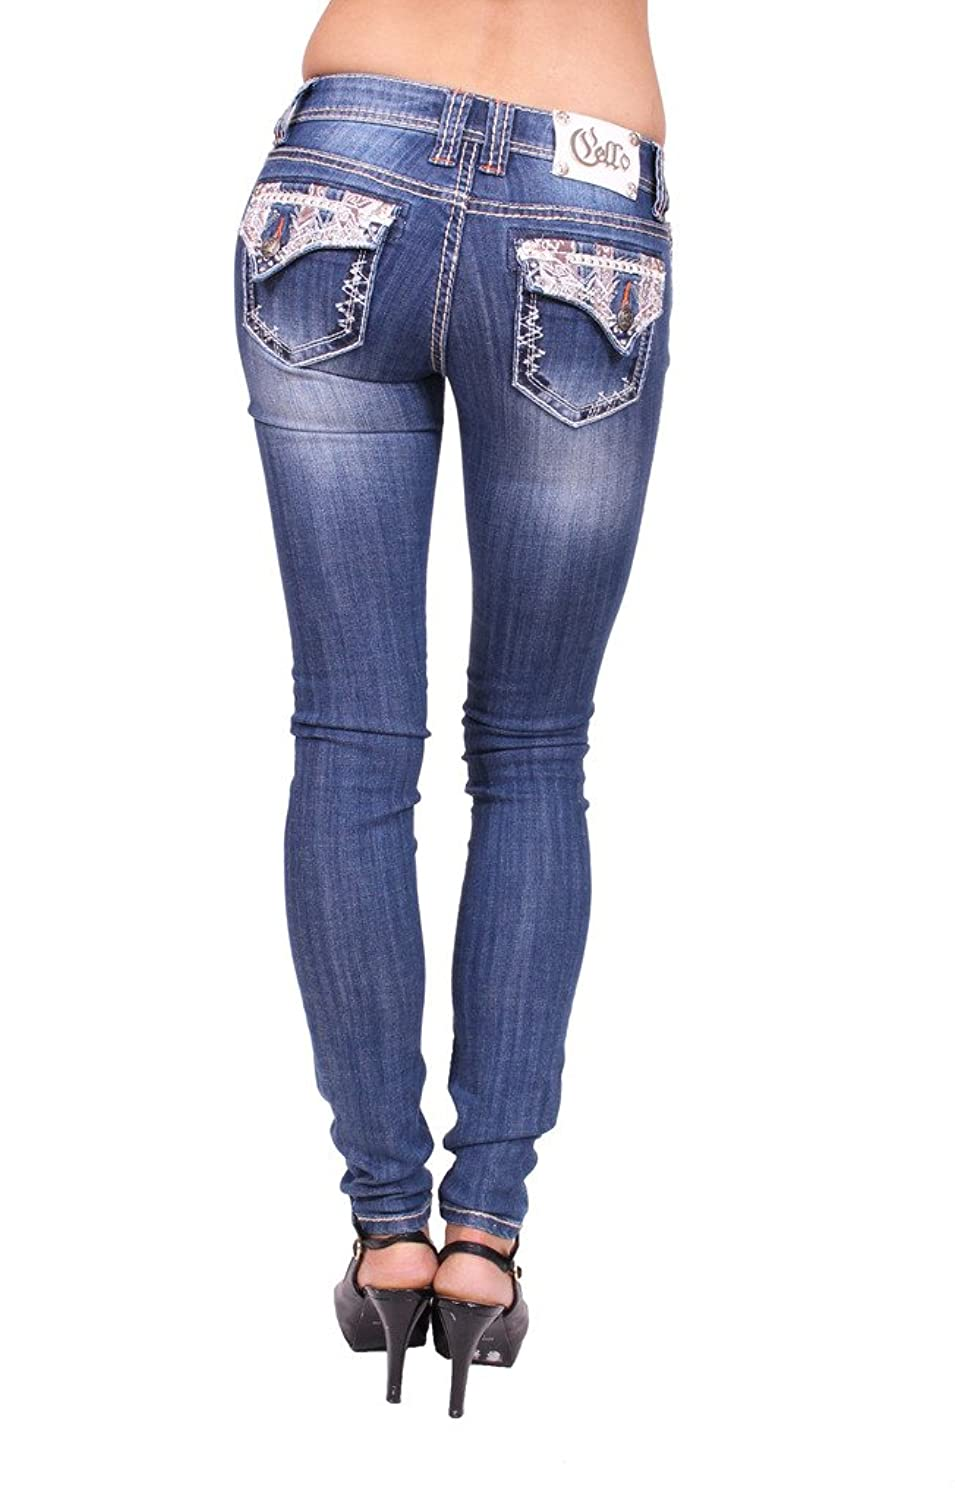 Cello Jeans Women Skinny Jeans with Aztec Print and Rhinestones